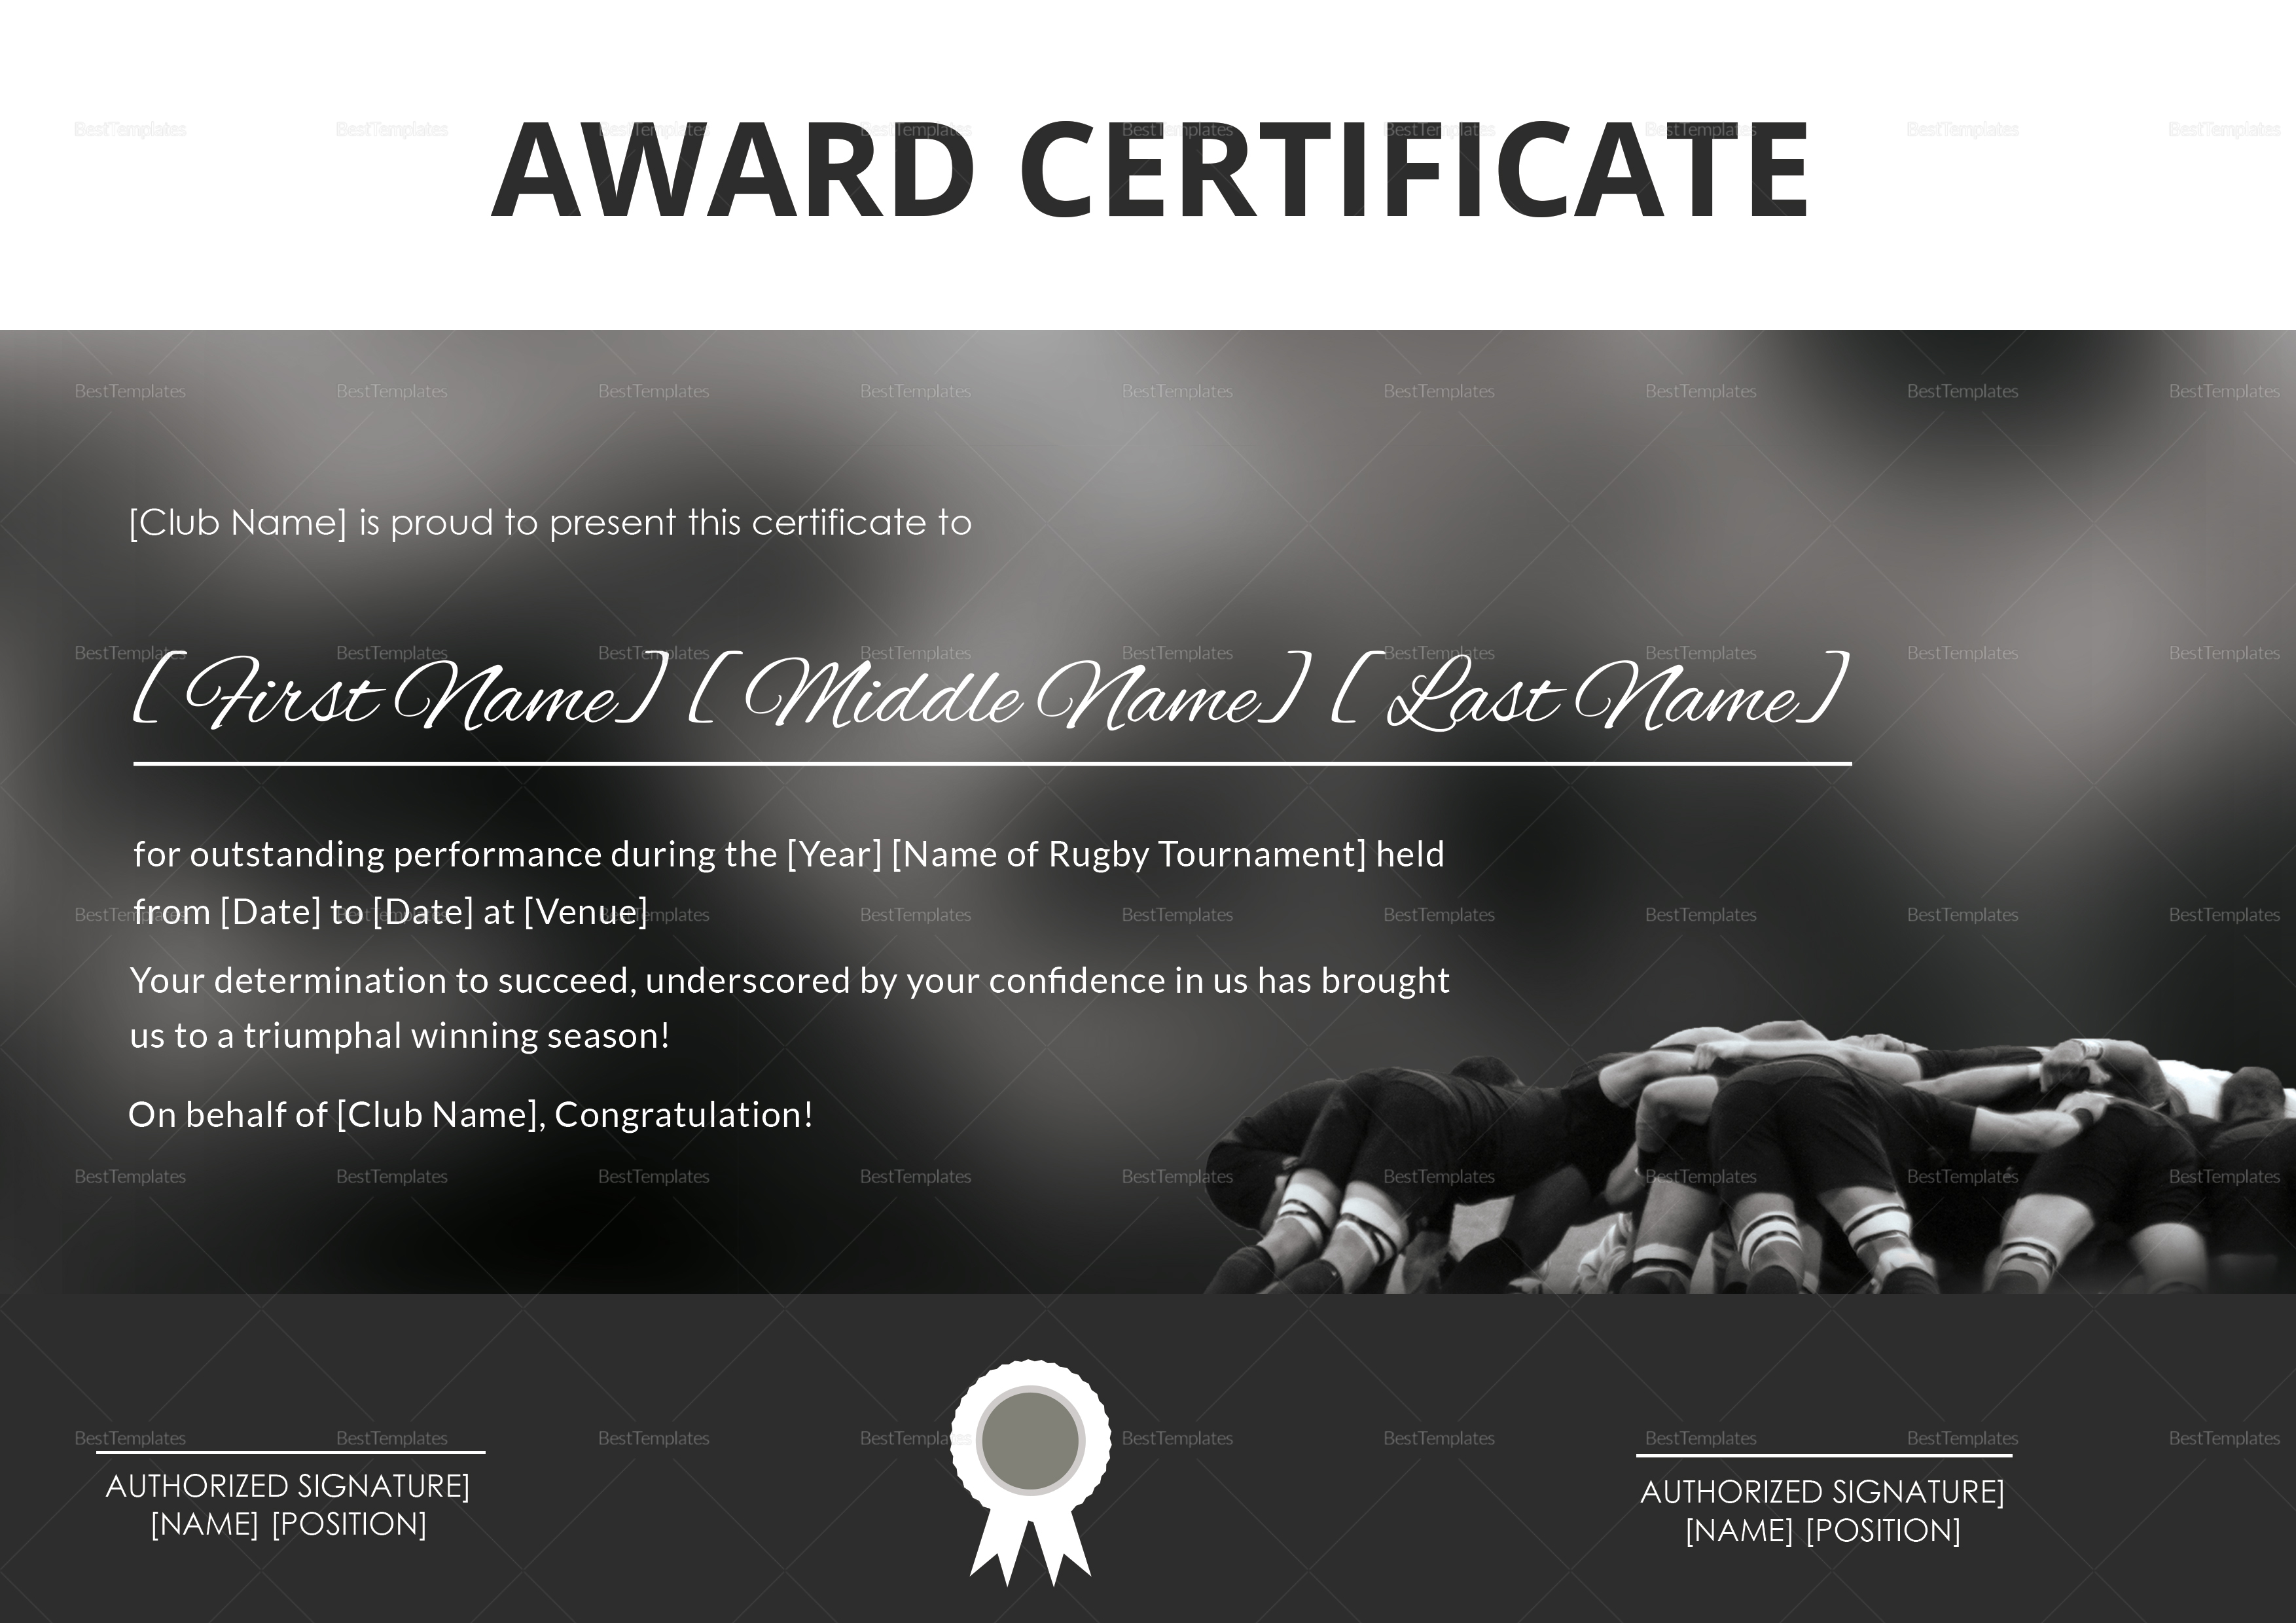 Sample Certificate of Rugby Award